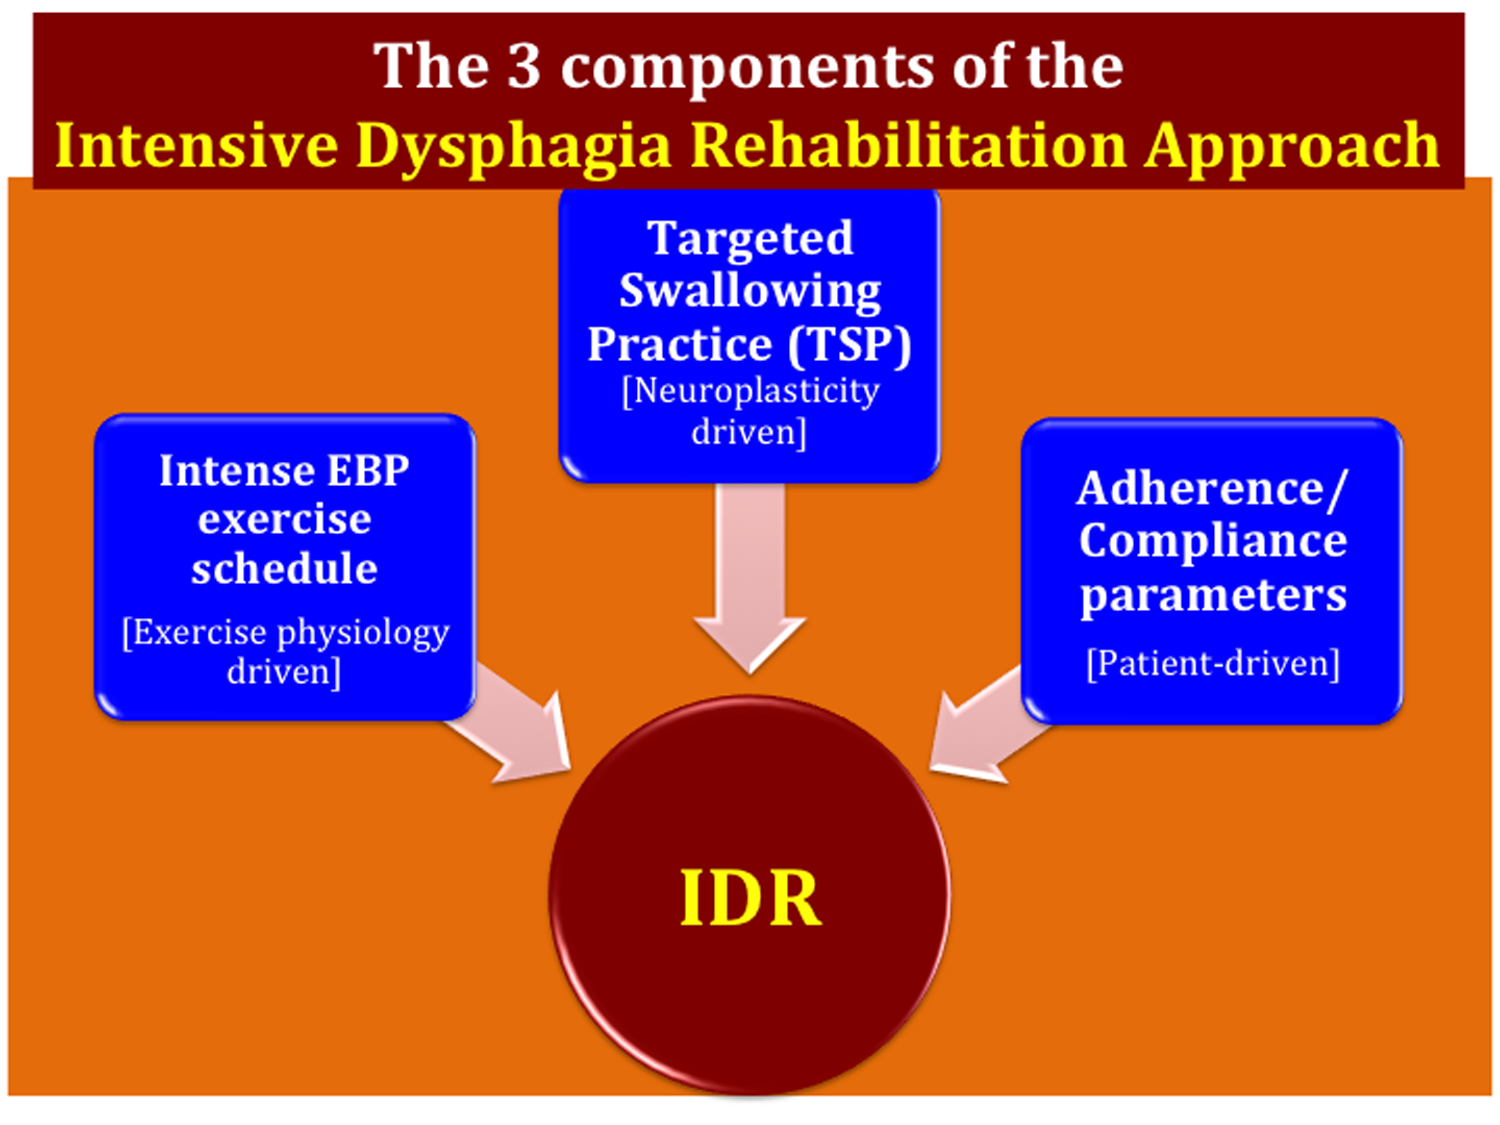 The components of the IDR approach developed by Dr. Malandraki